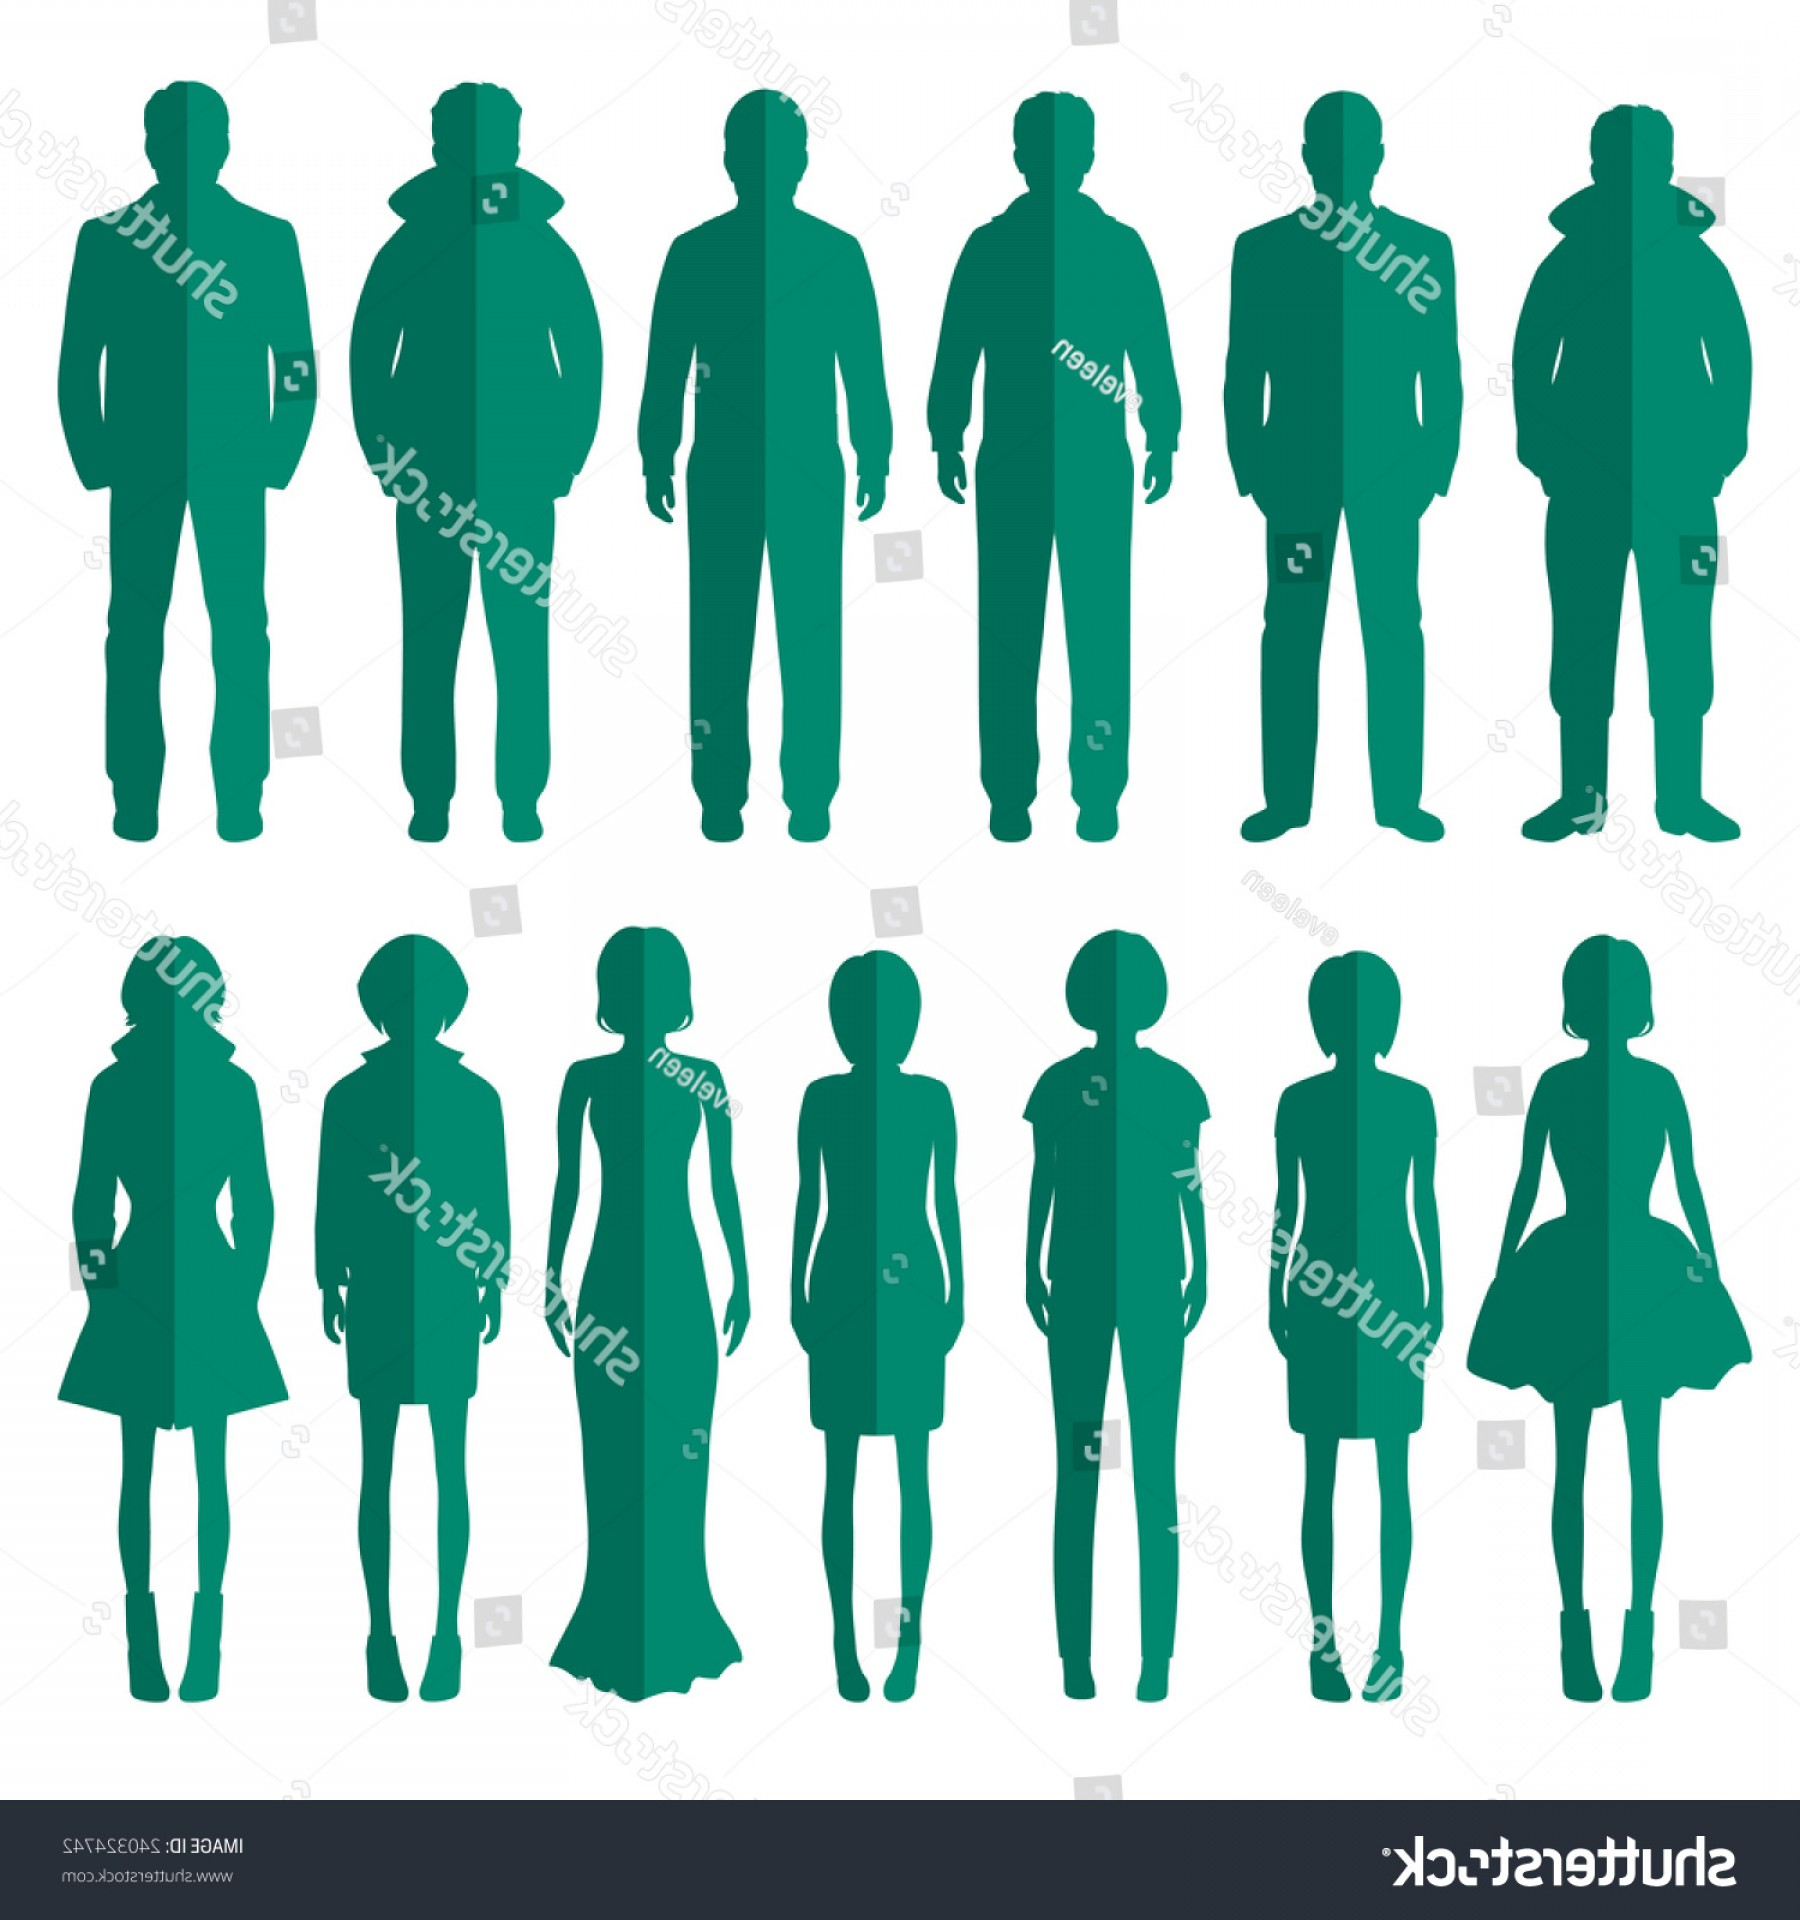 Sillouhette Vector Group: Vector Group Standing People Silhouettes Icons